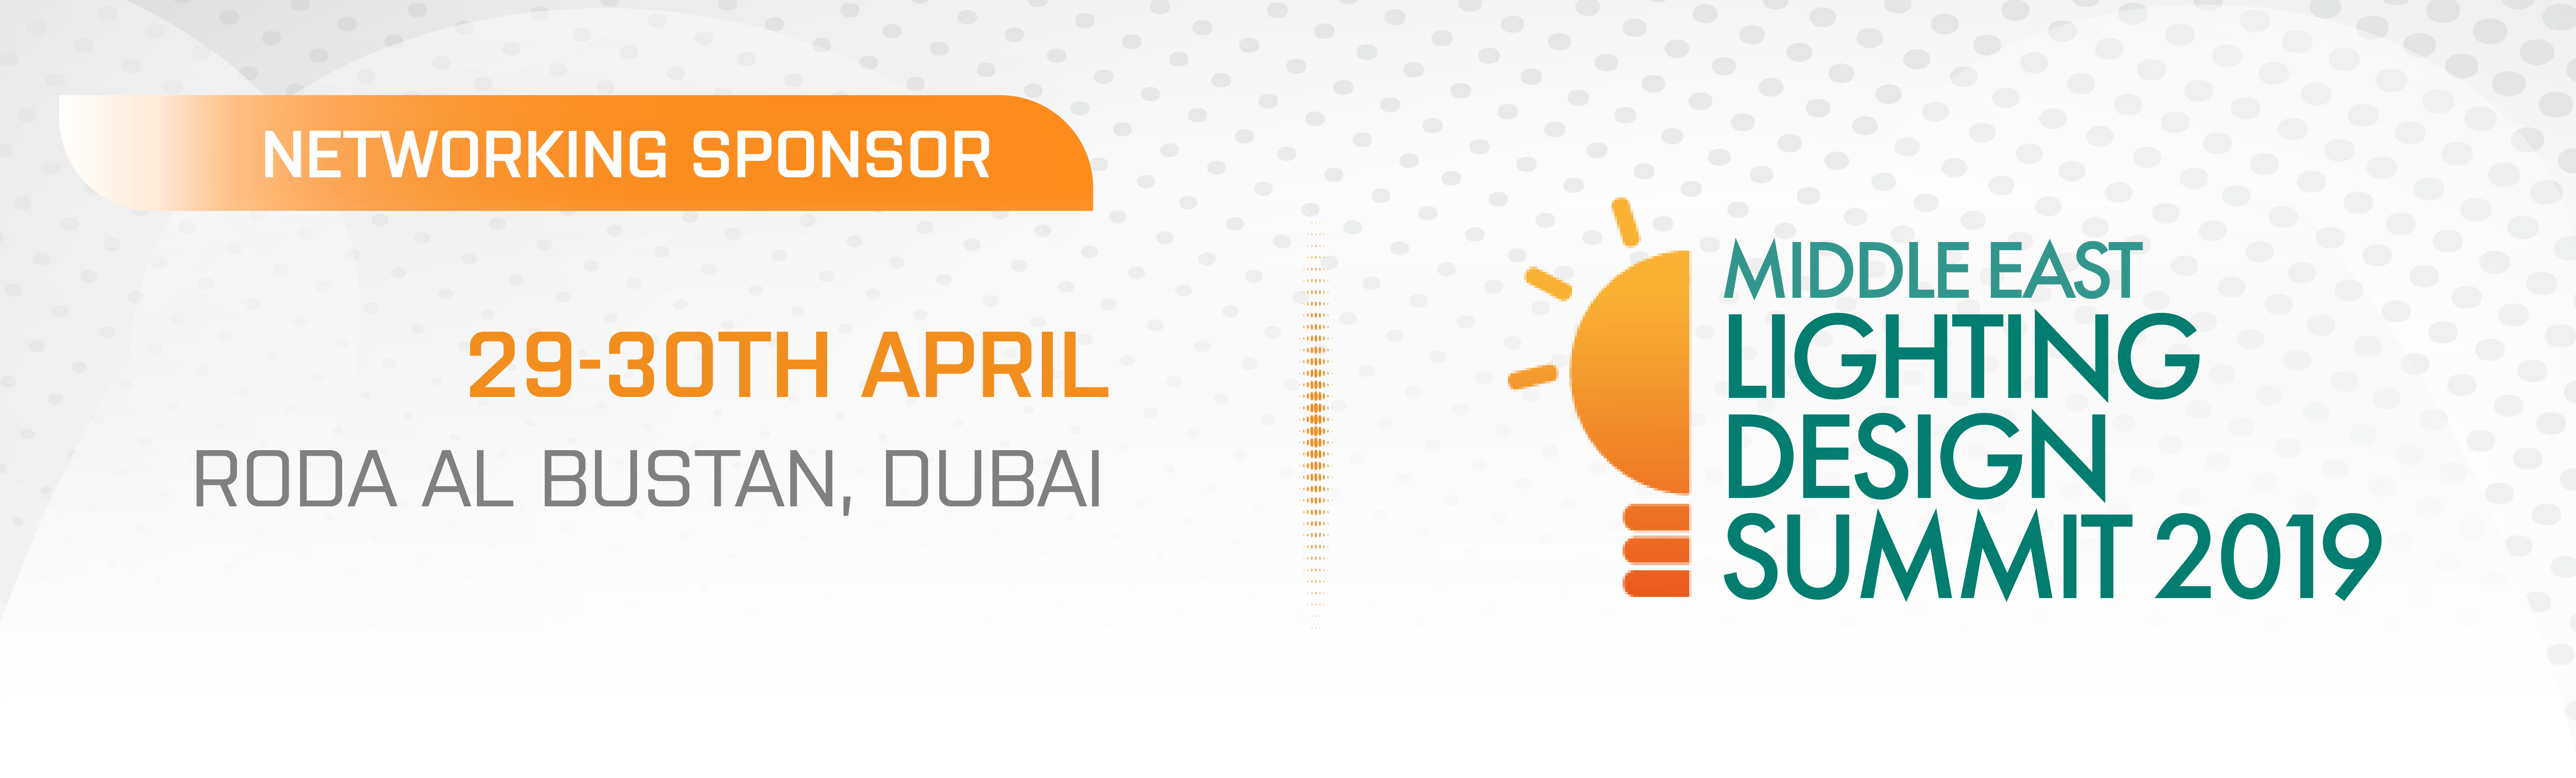 8th Annual Middle East Lighting Summit